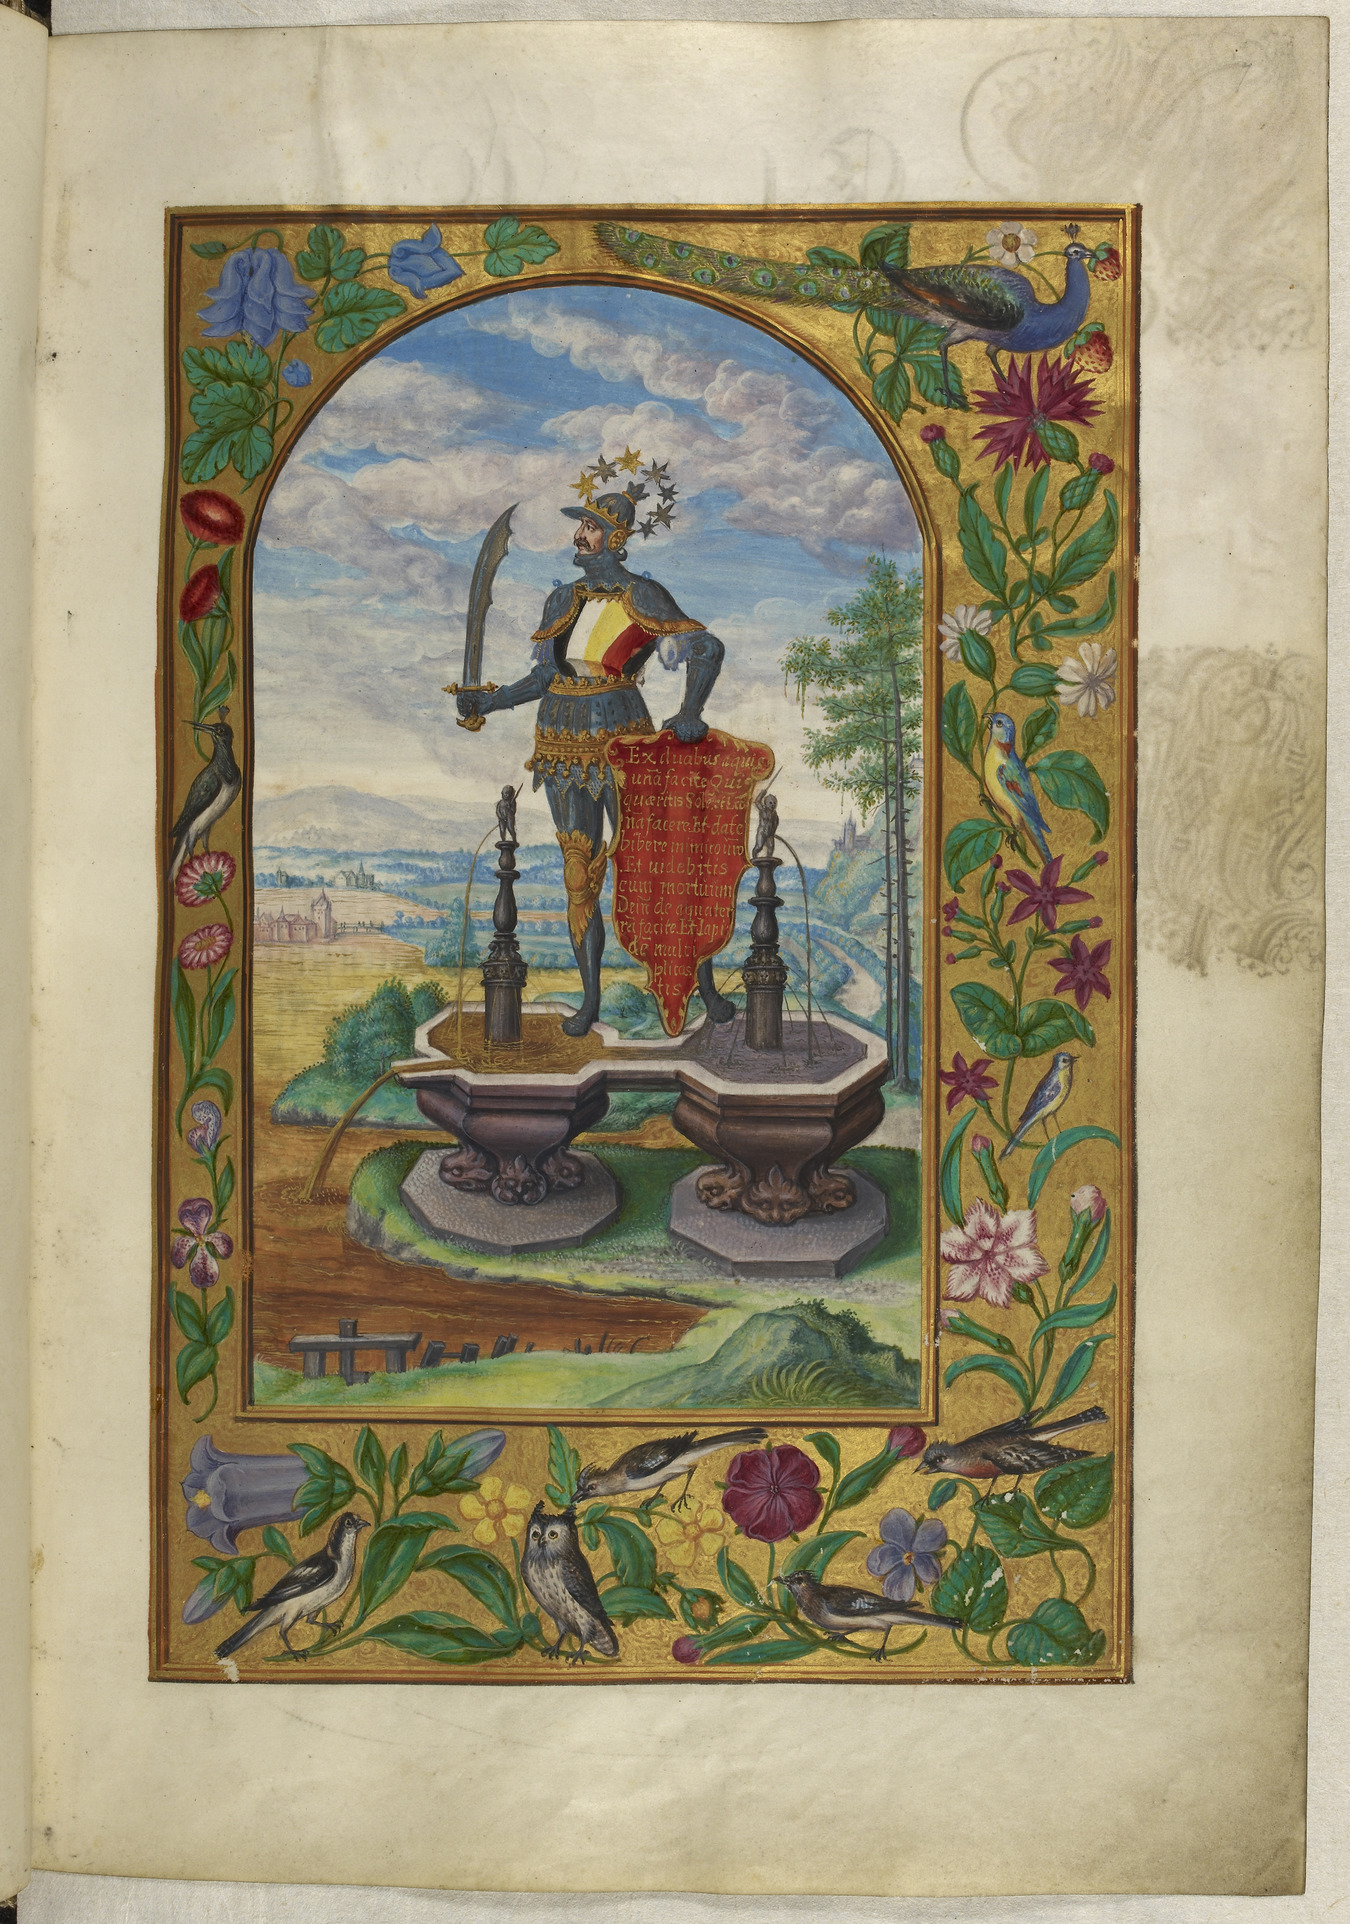 Knight_standing_on_fountains_-_Splendor_Solis_(1582),_f.7_-_BL_Harley_MS_3469